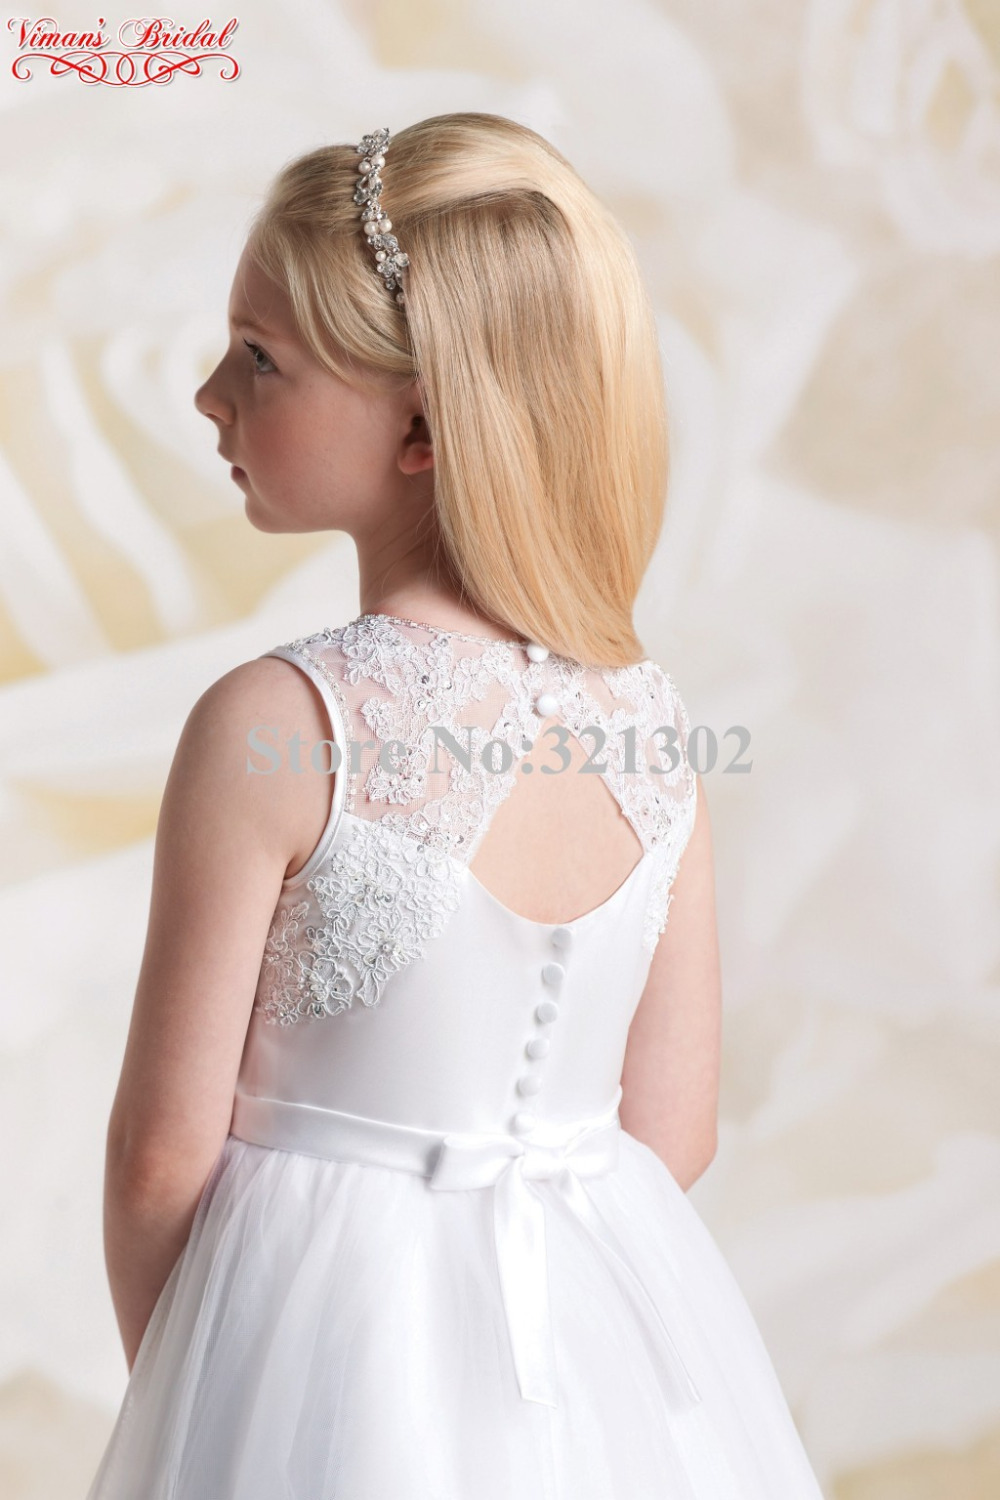 2015 white child bridesmaid dresses appliques lace scoop ball gown 2015 white child bridesmaid dresses appliques lace scoop ball gown ankle length pageant dress with a bow free shipping ak17 in flower girl dresses from ombrellifo Choice Image